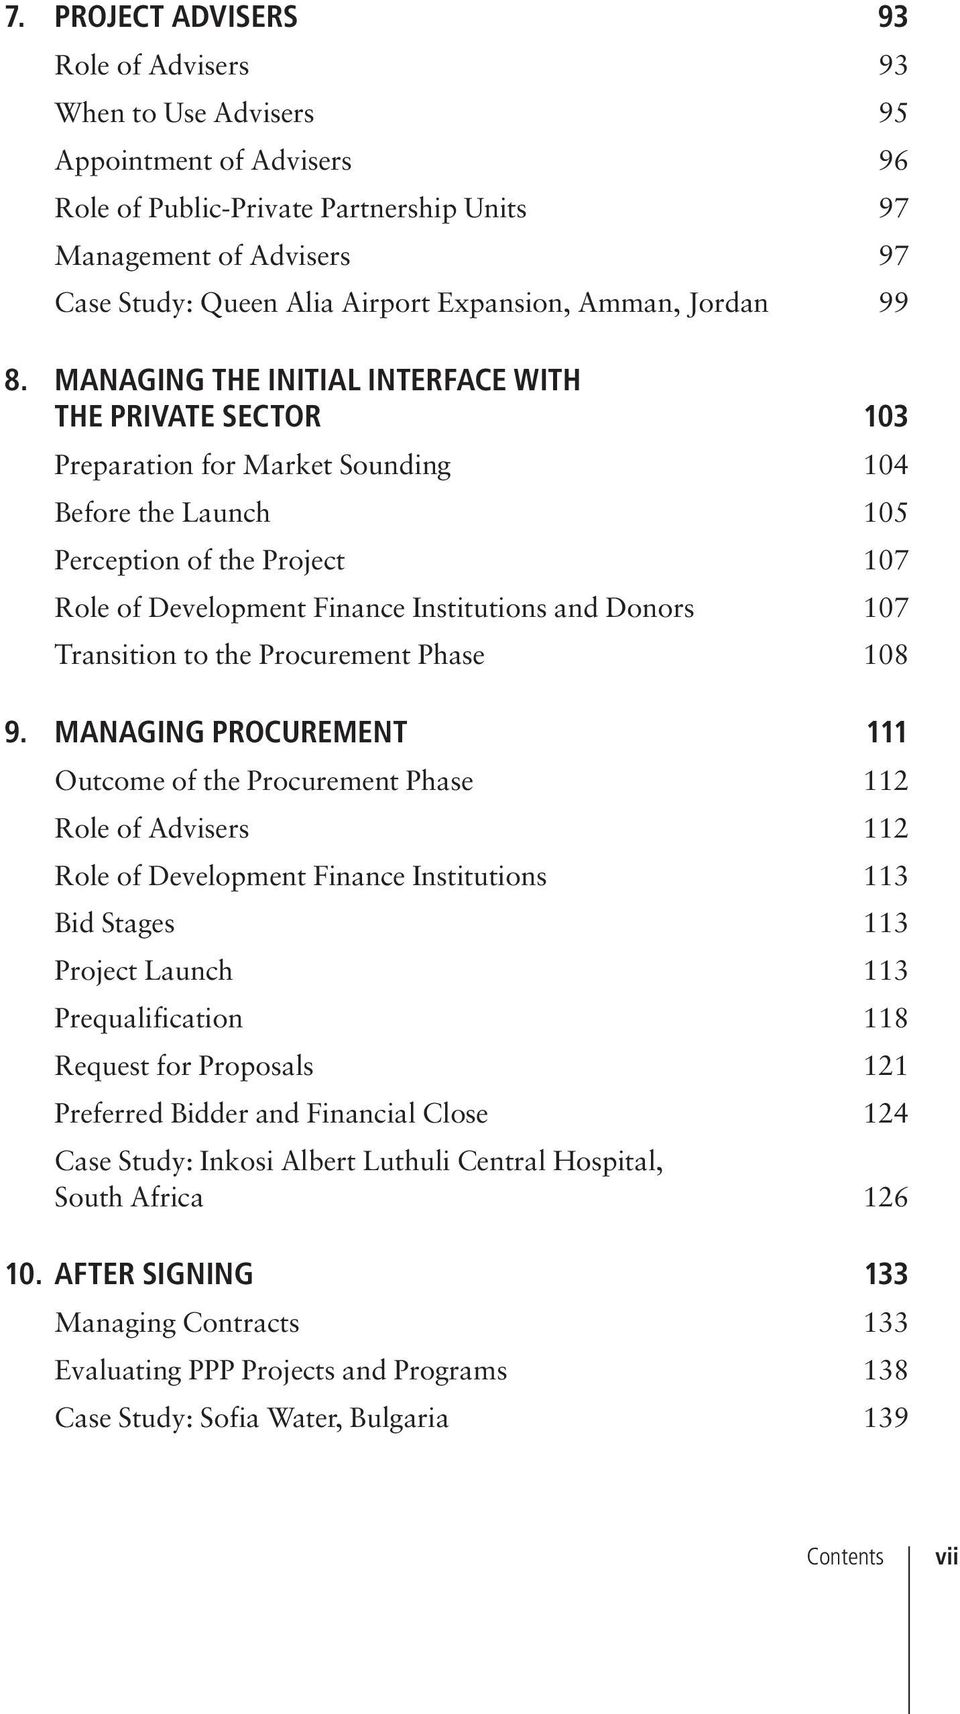 MANAGING THE INITIAL INTERFACE WITH THE PRIVATE SECTOR 103 Preparation for Market Sounding 104 Before the Launch 105 Perception of the Project 107 Role of Development Finance Institutions and Donors